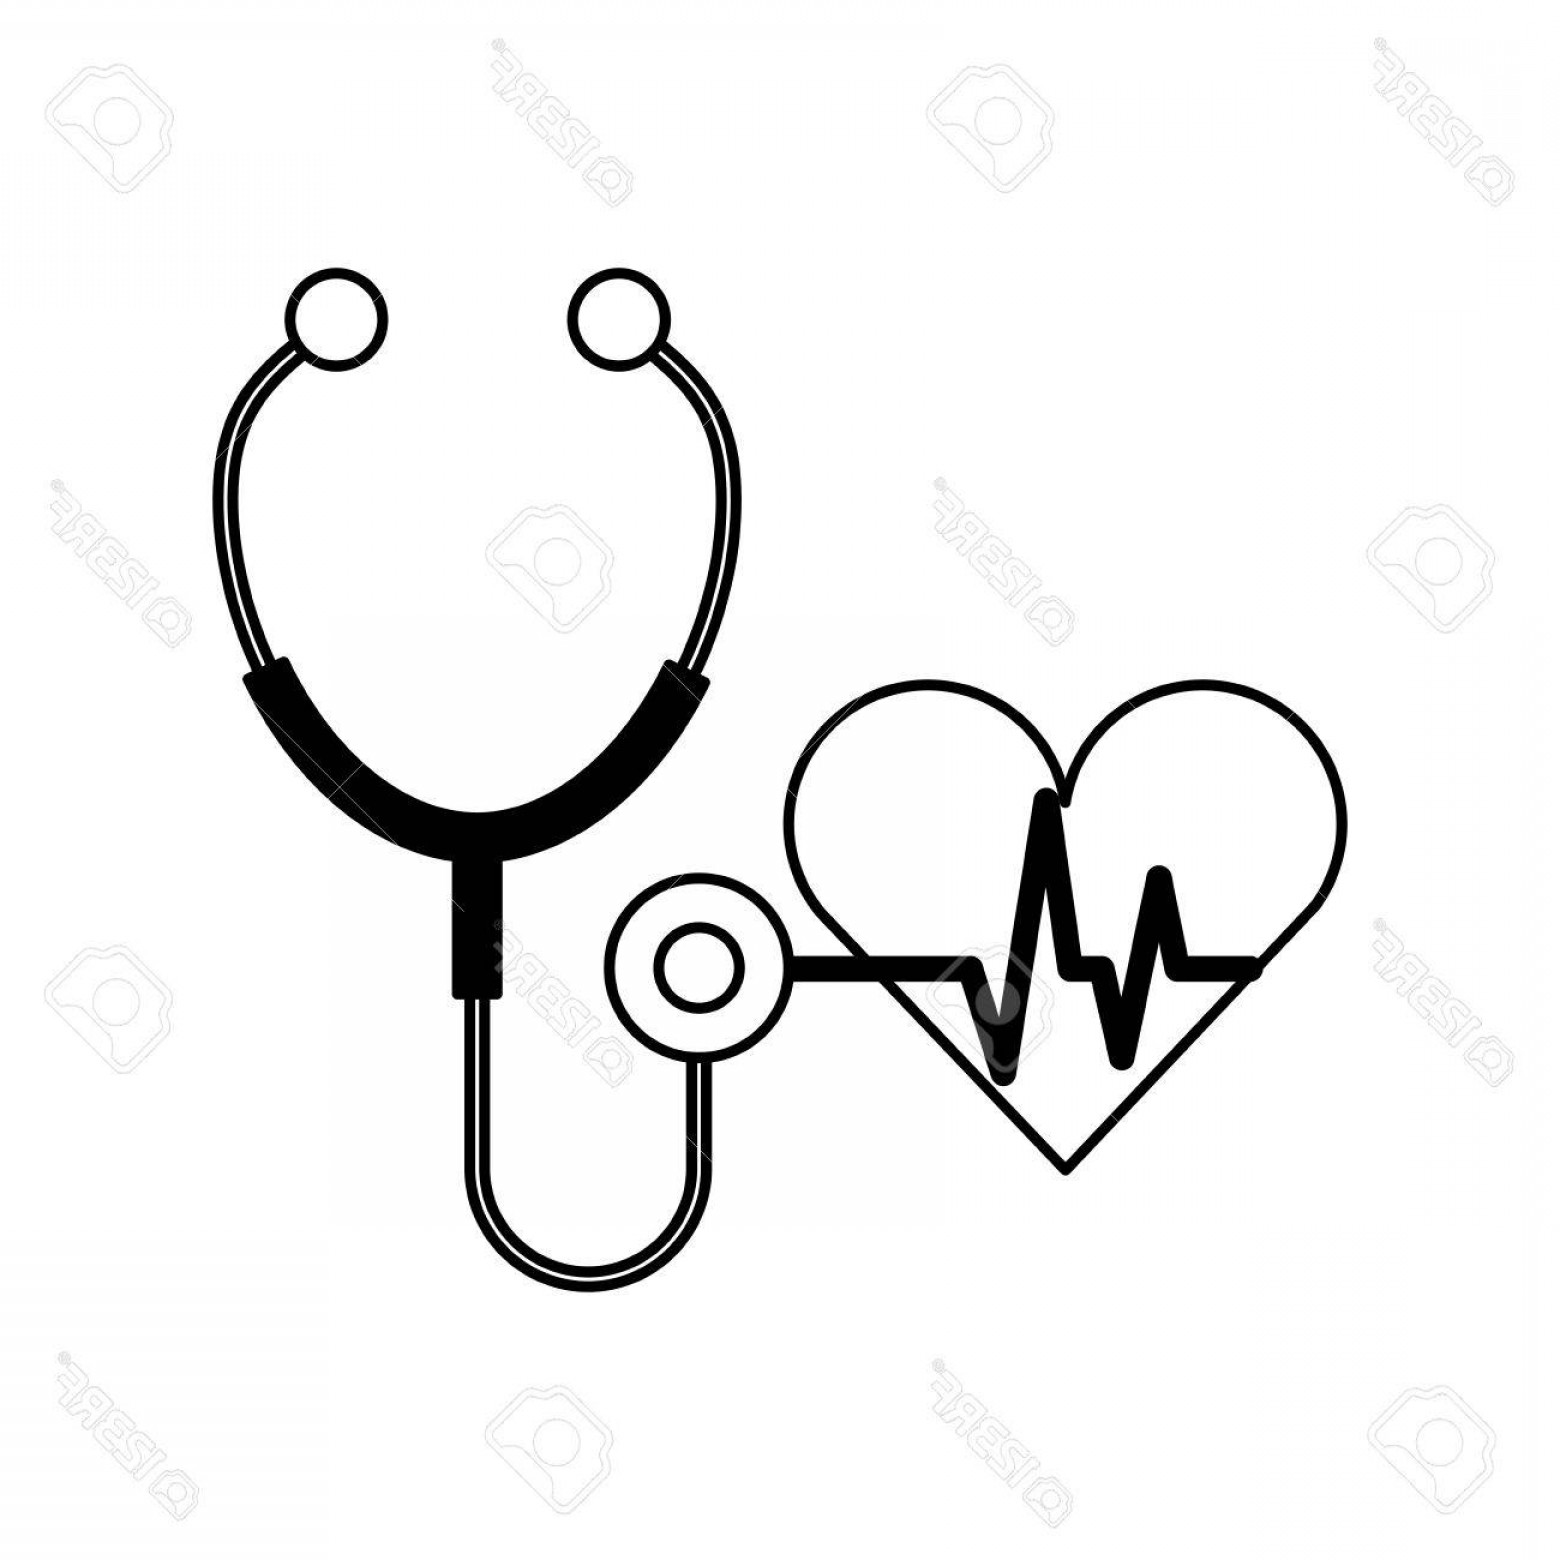 1560x1560 Photostock Vector Stethoscope Medical With Heart Vector